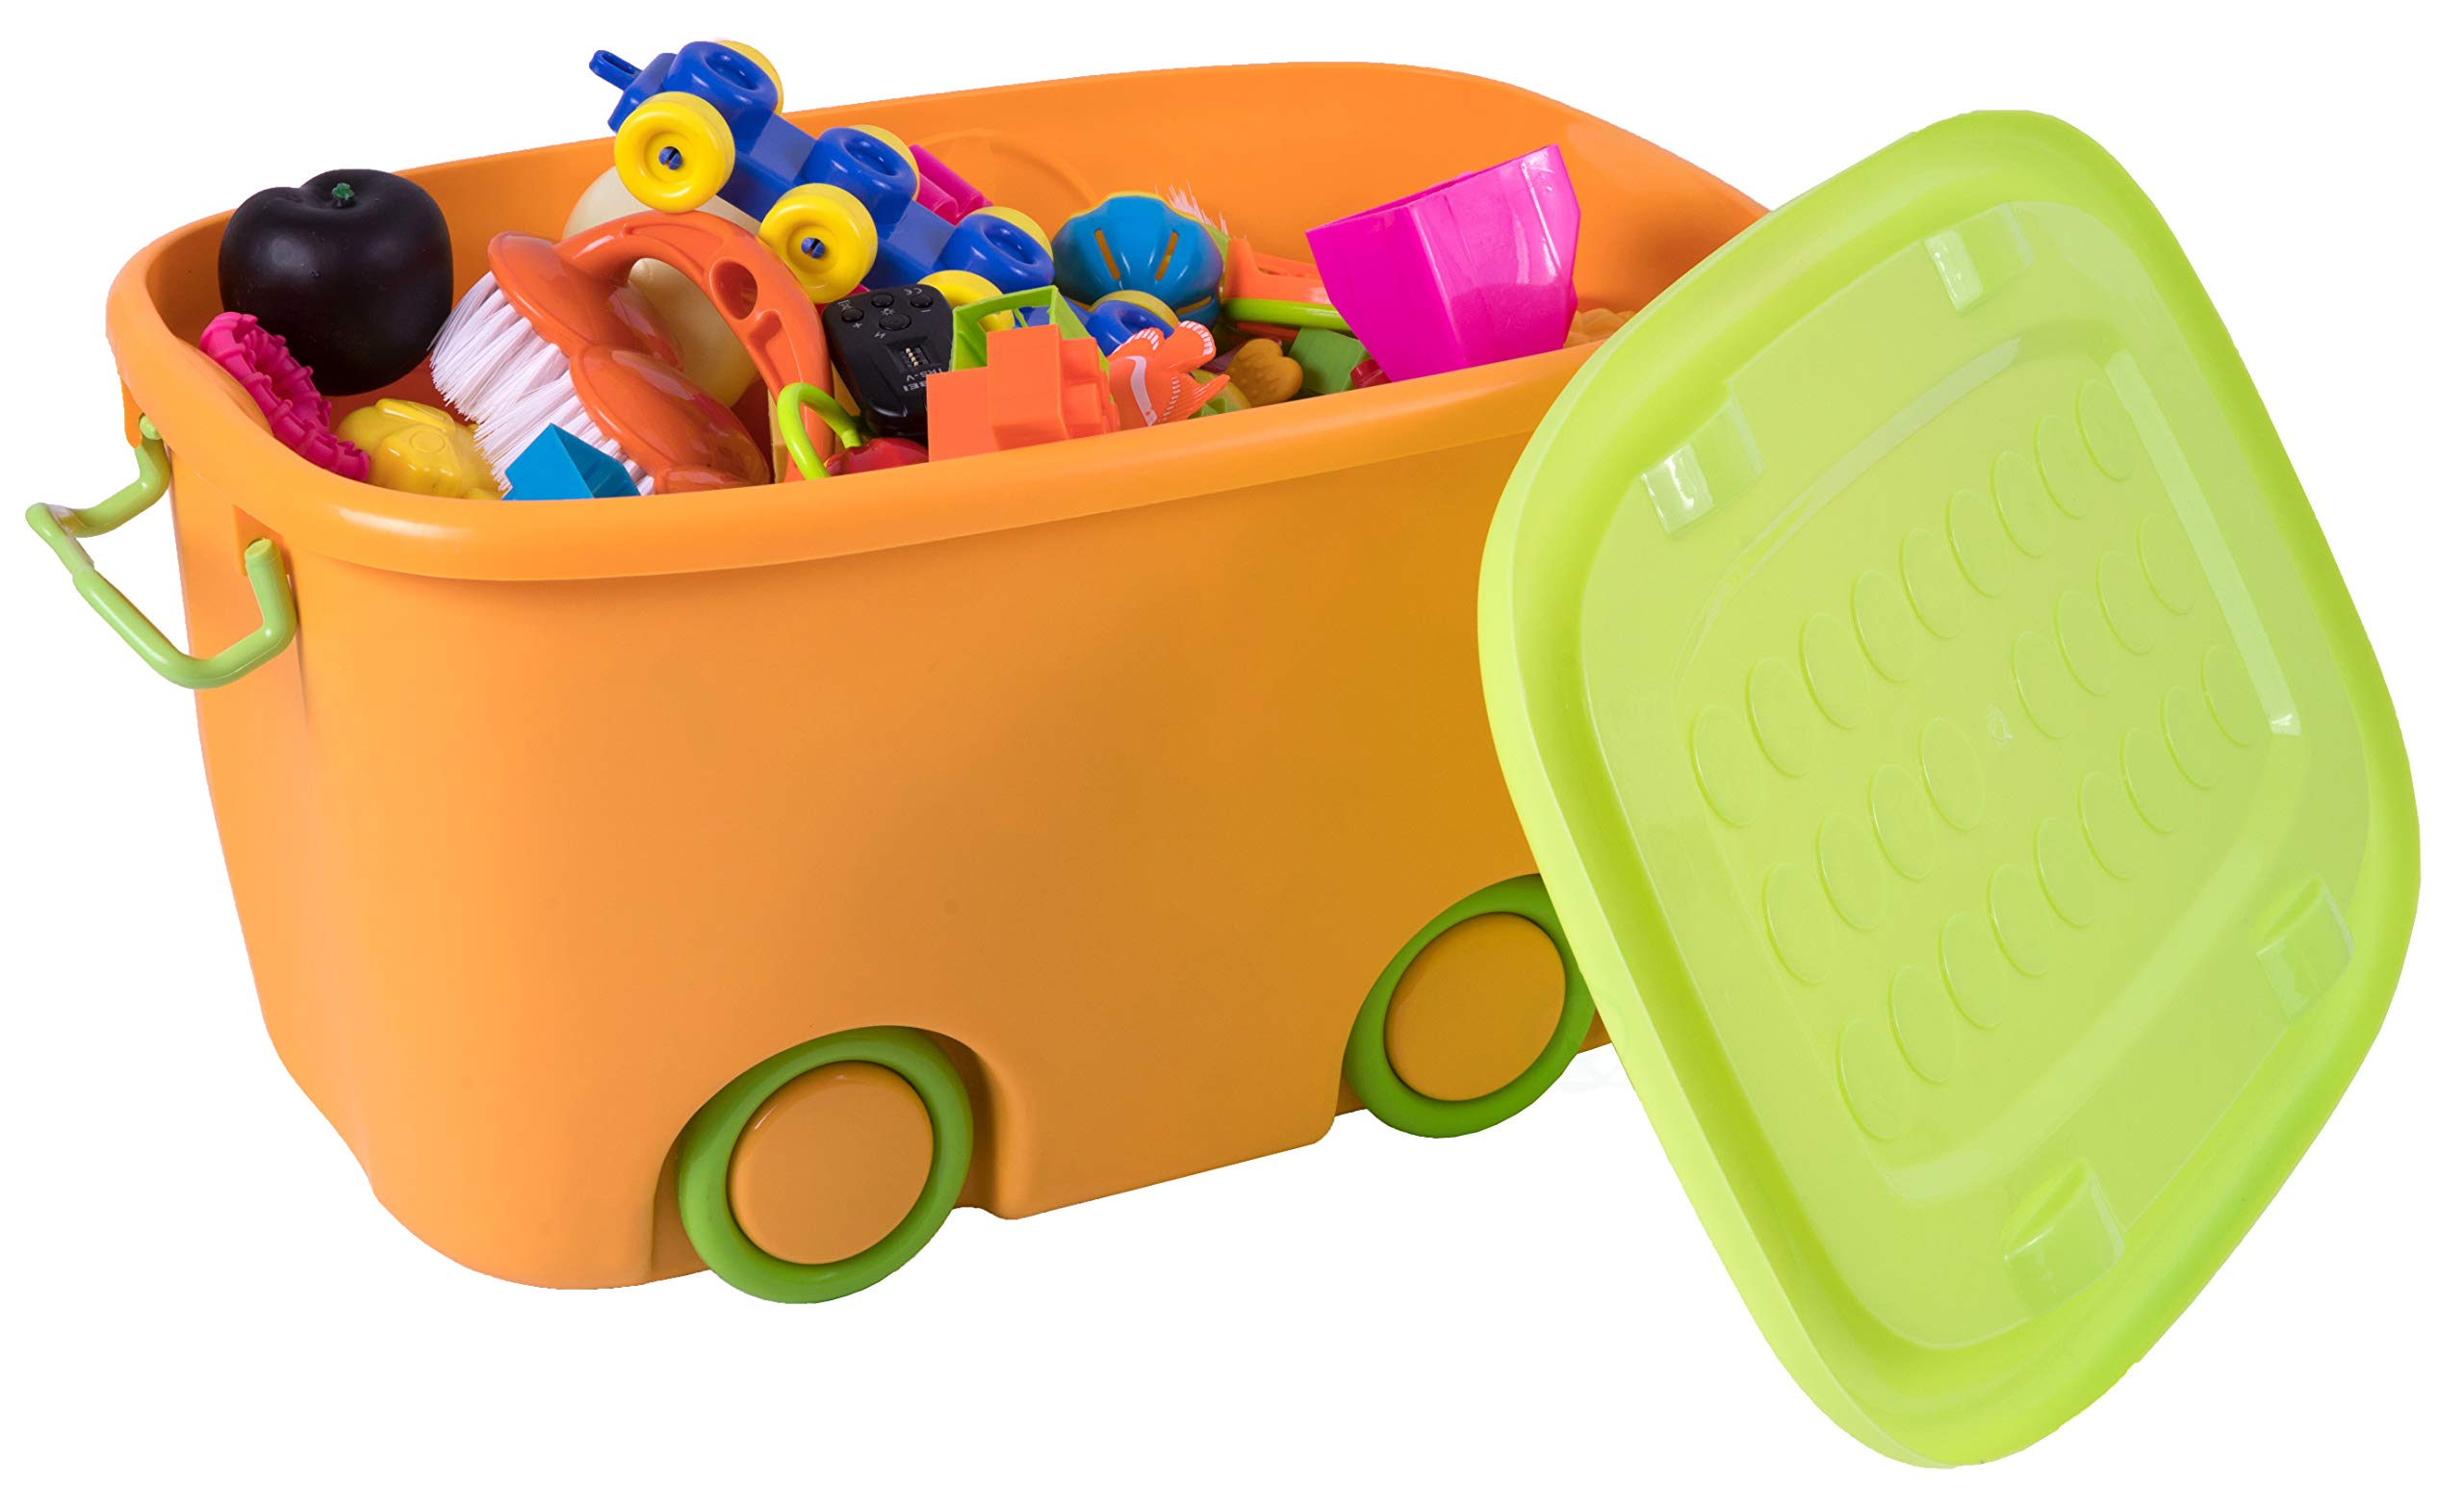 Stackable Toy Storage Box with Wheels (Small Orange)